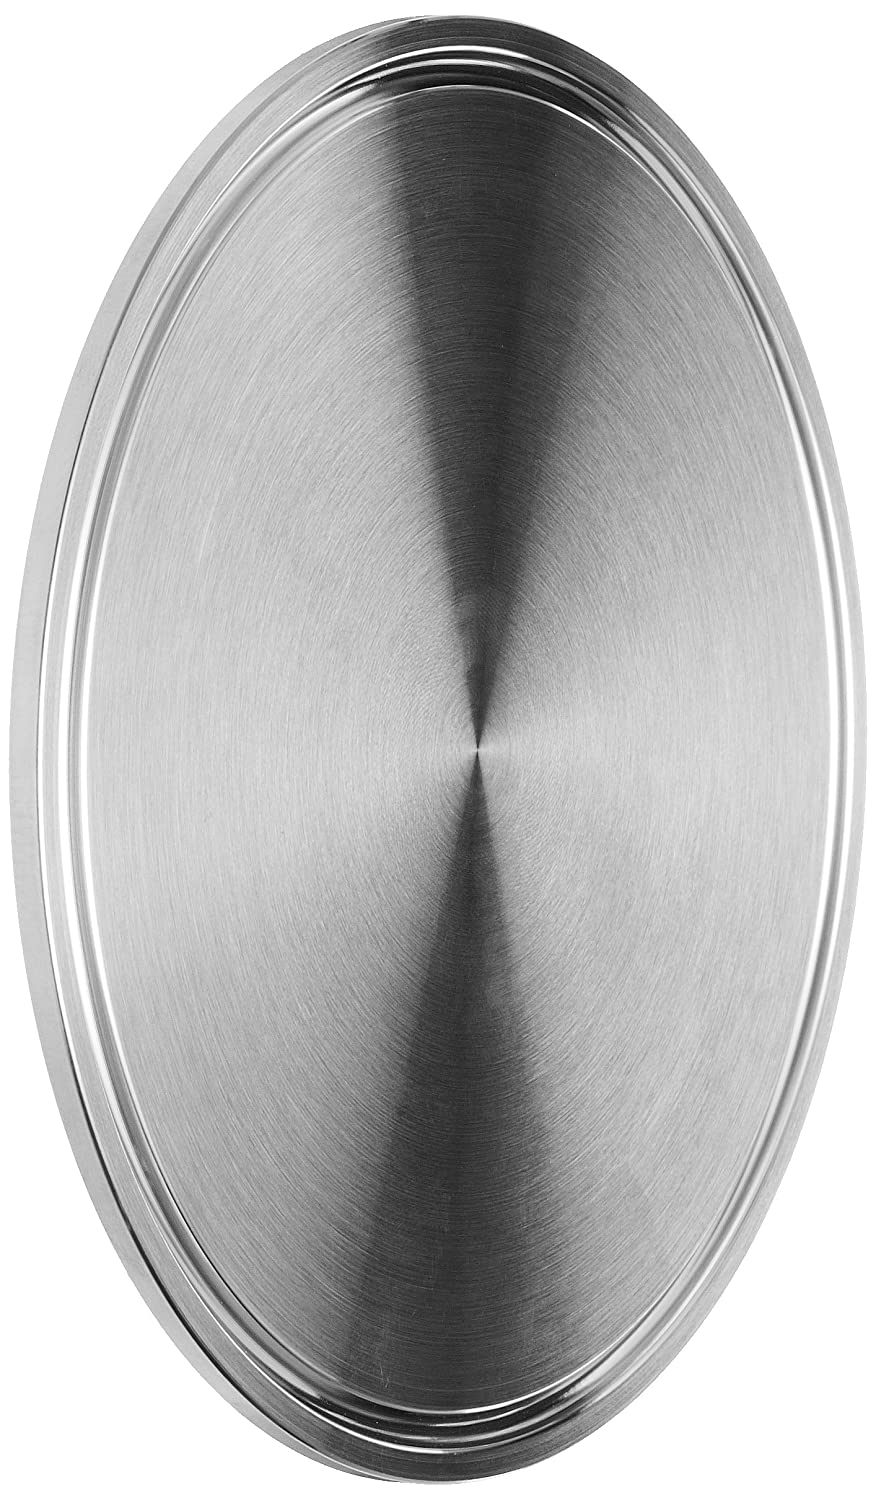 Dixon 16AMP-G100-150 Stainless Steel 304 Sanitary Fitting, Clamp End Cap, 1